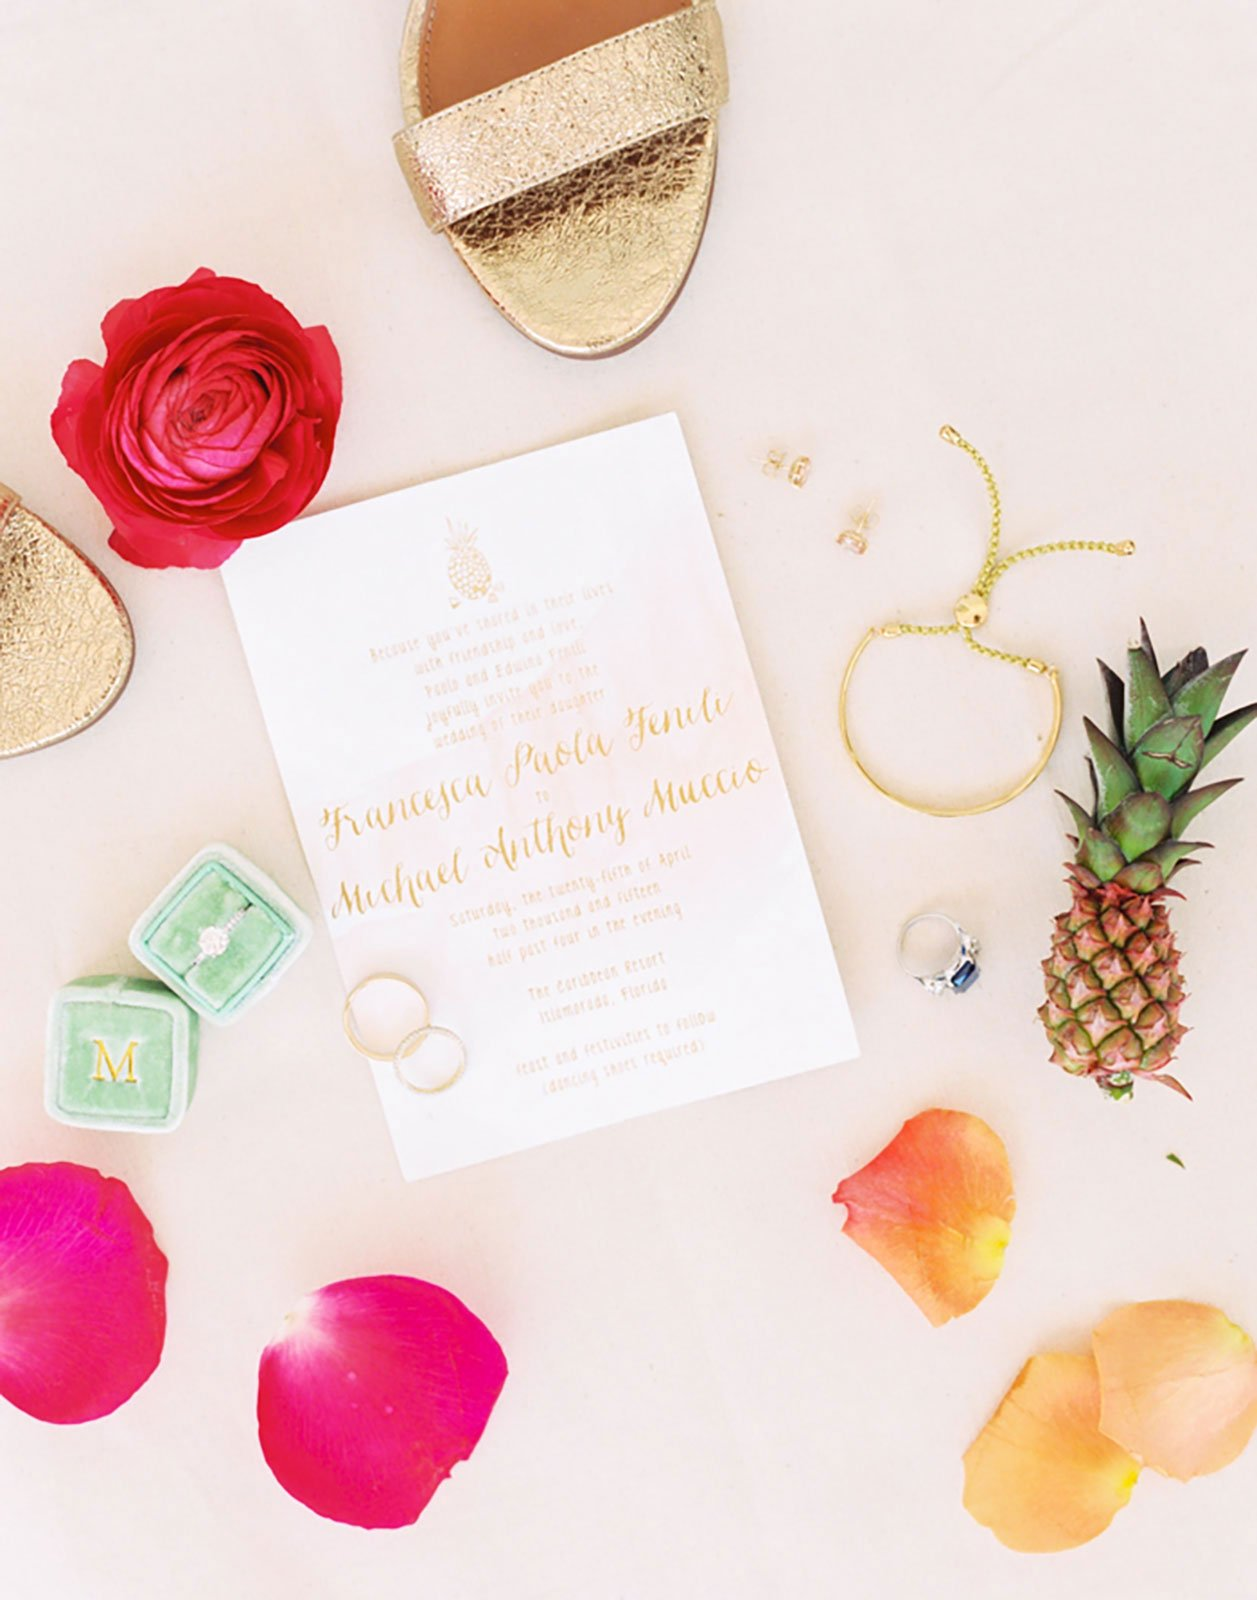 Custom gold wedding invitation with pineapple motif accent for a destination wedding in Islamorada, FL